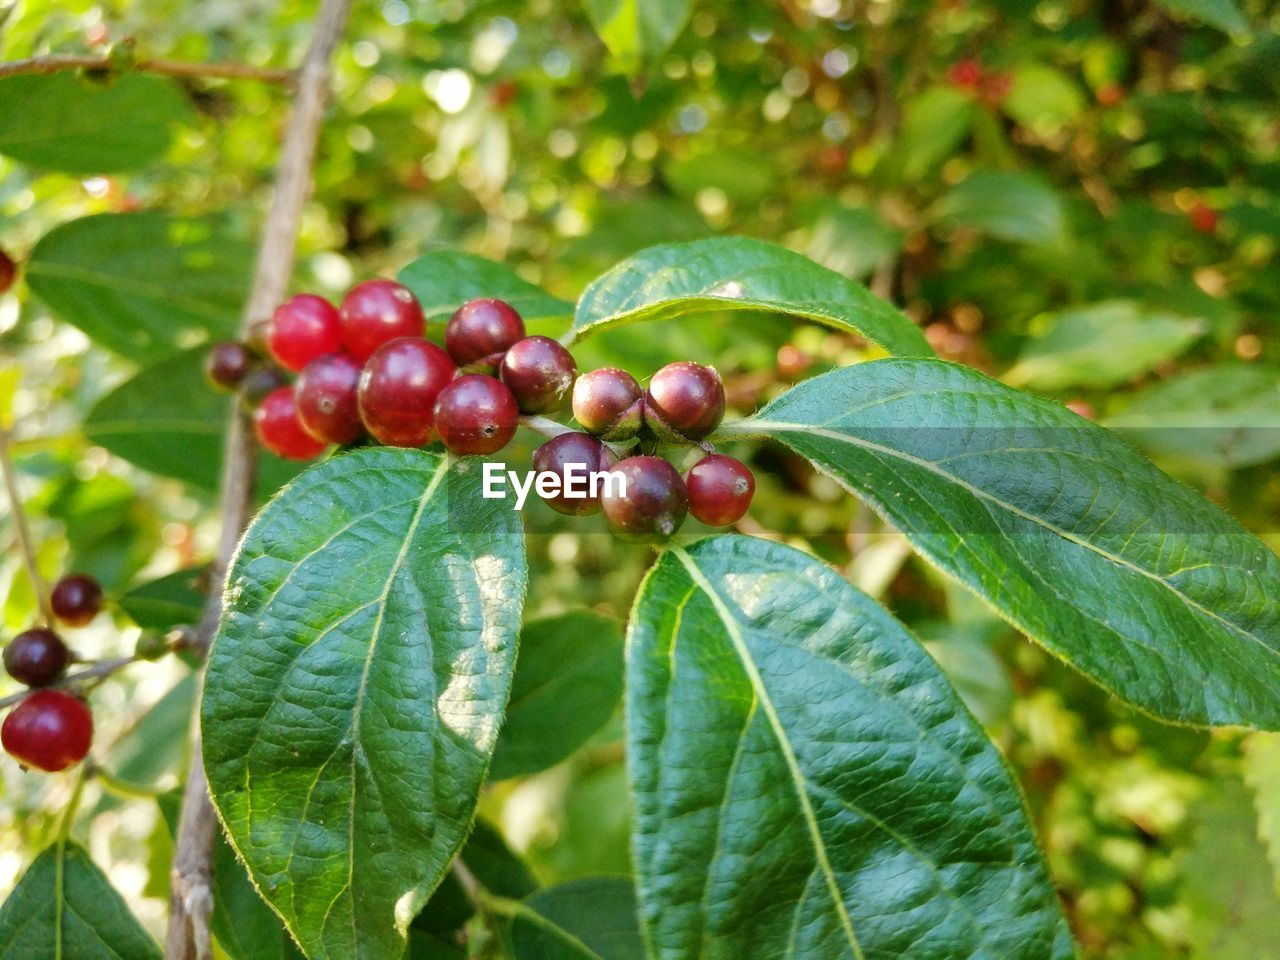 leaf, plant part, food and drink, food, fruit, growth, plant, healthy eating, freshness, green color, close-up, nature, tree, day, berry fruit, beauty in nature, focus on foreground, red, no people, outdoors, ripe